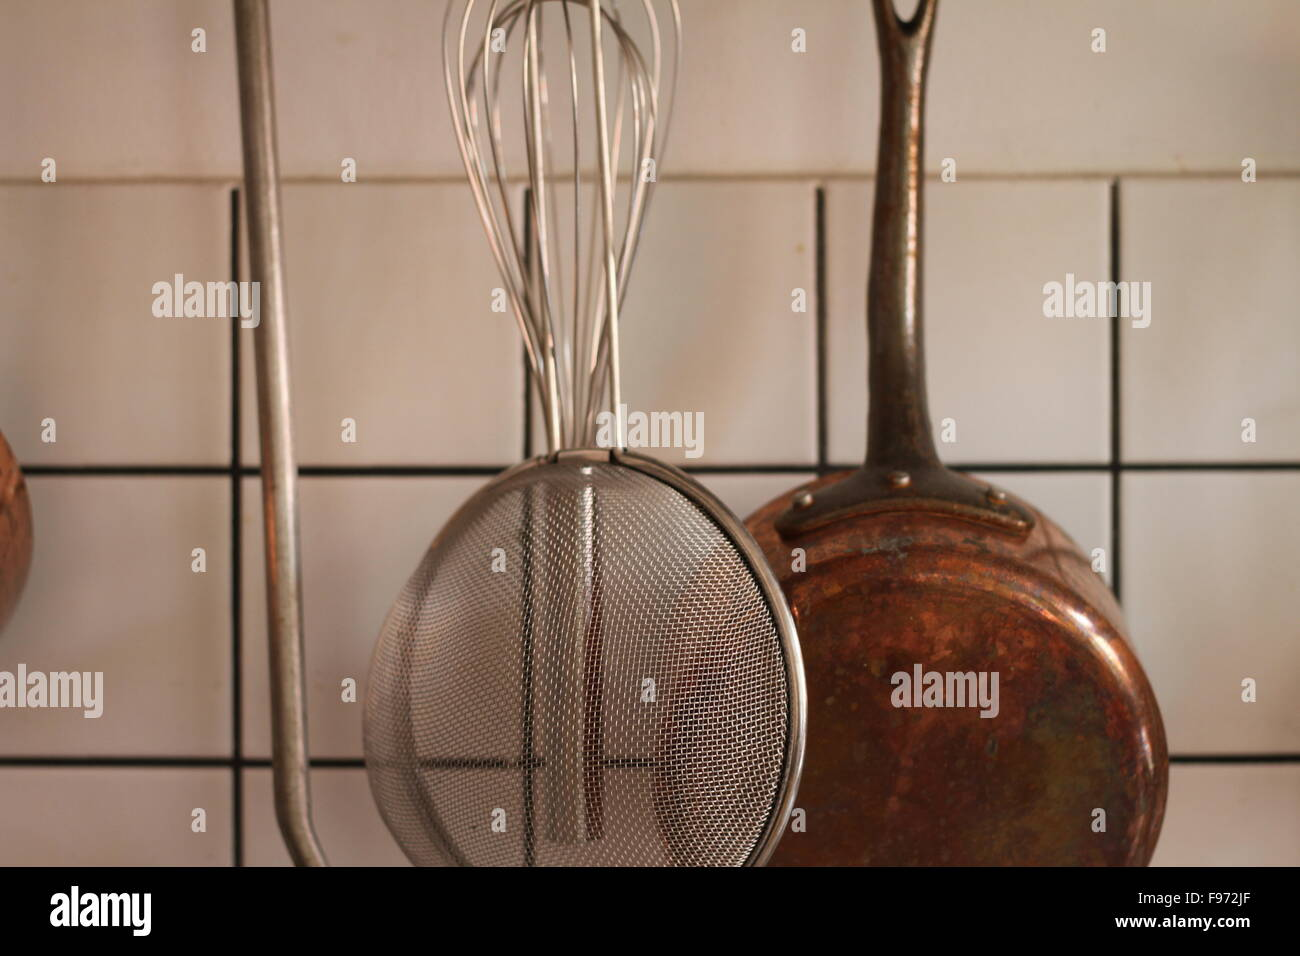 Hanging Brass Kitchen Utensils - Stock Image